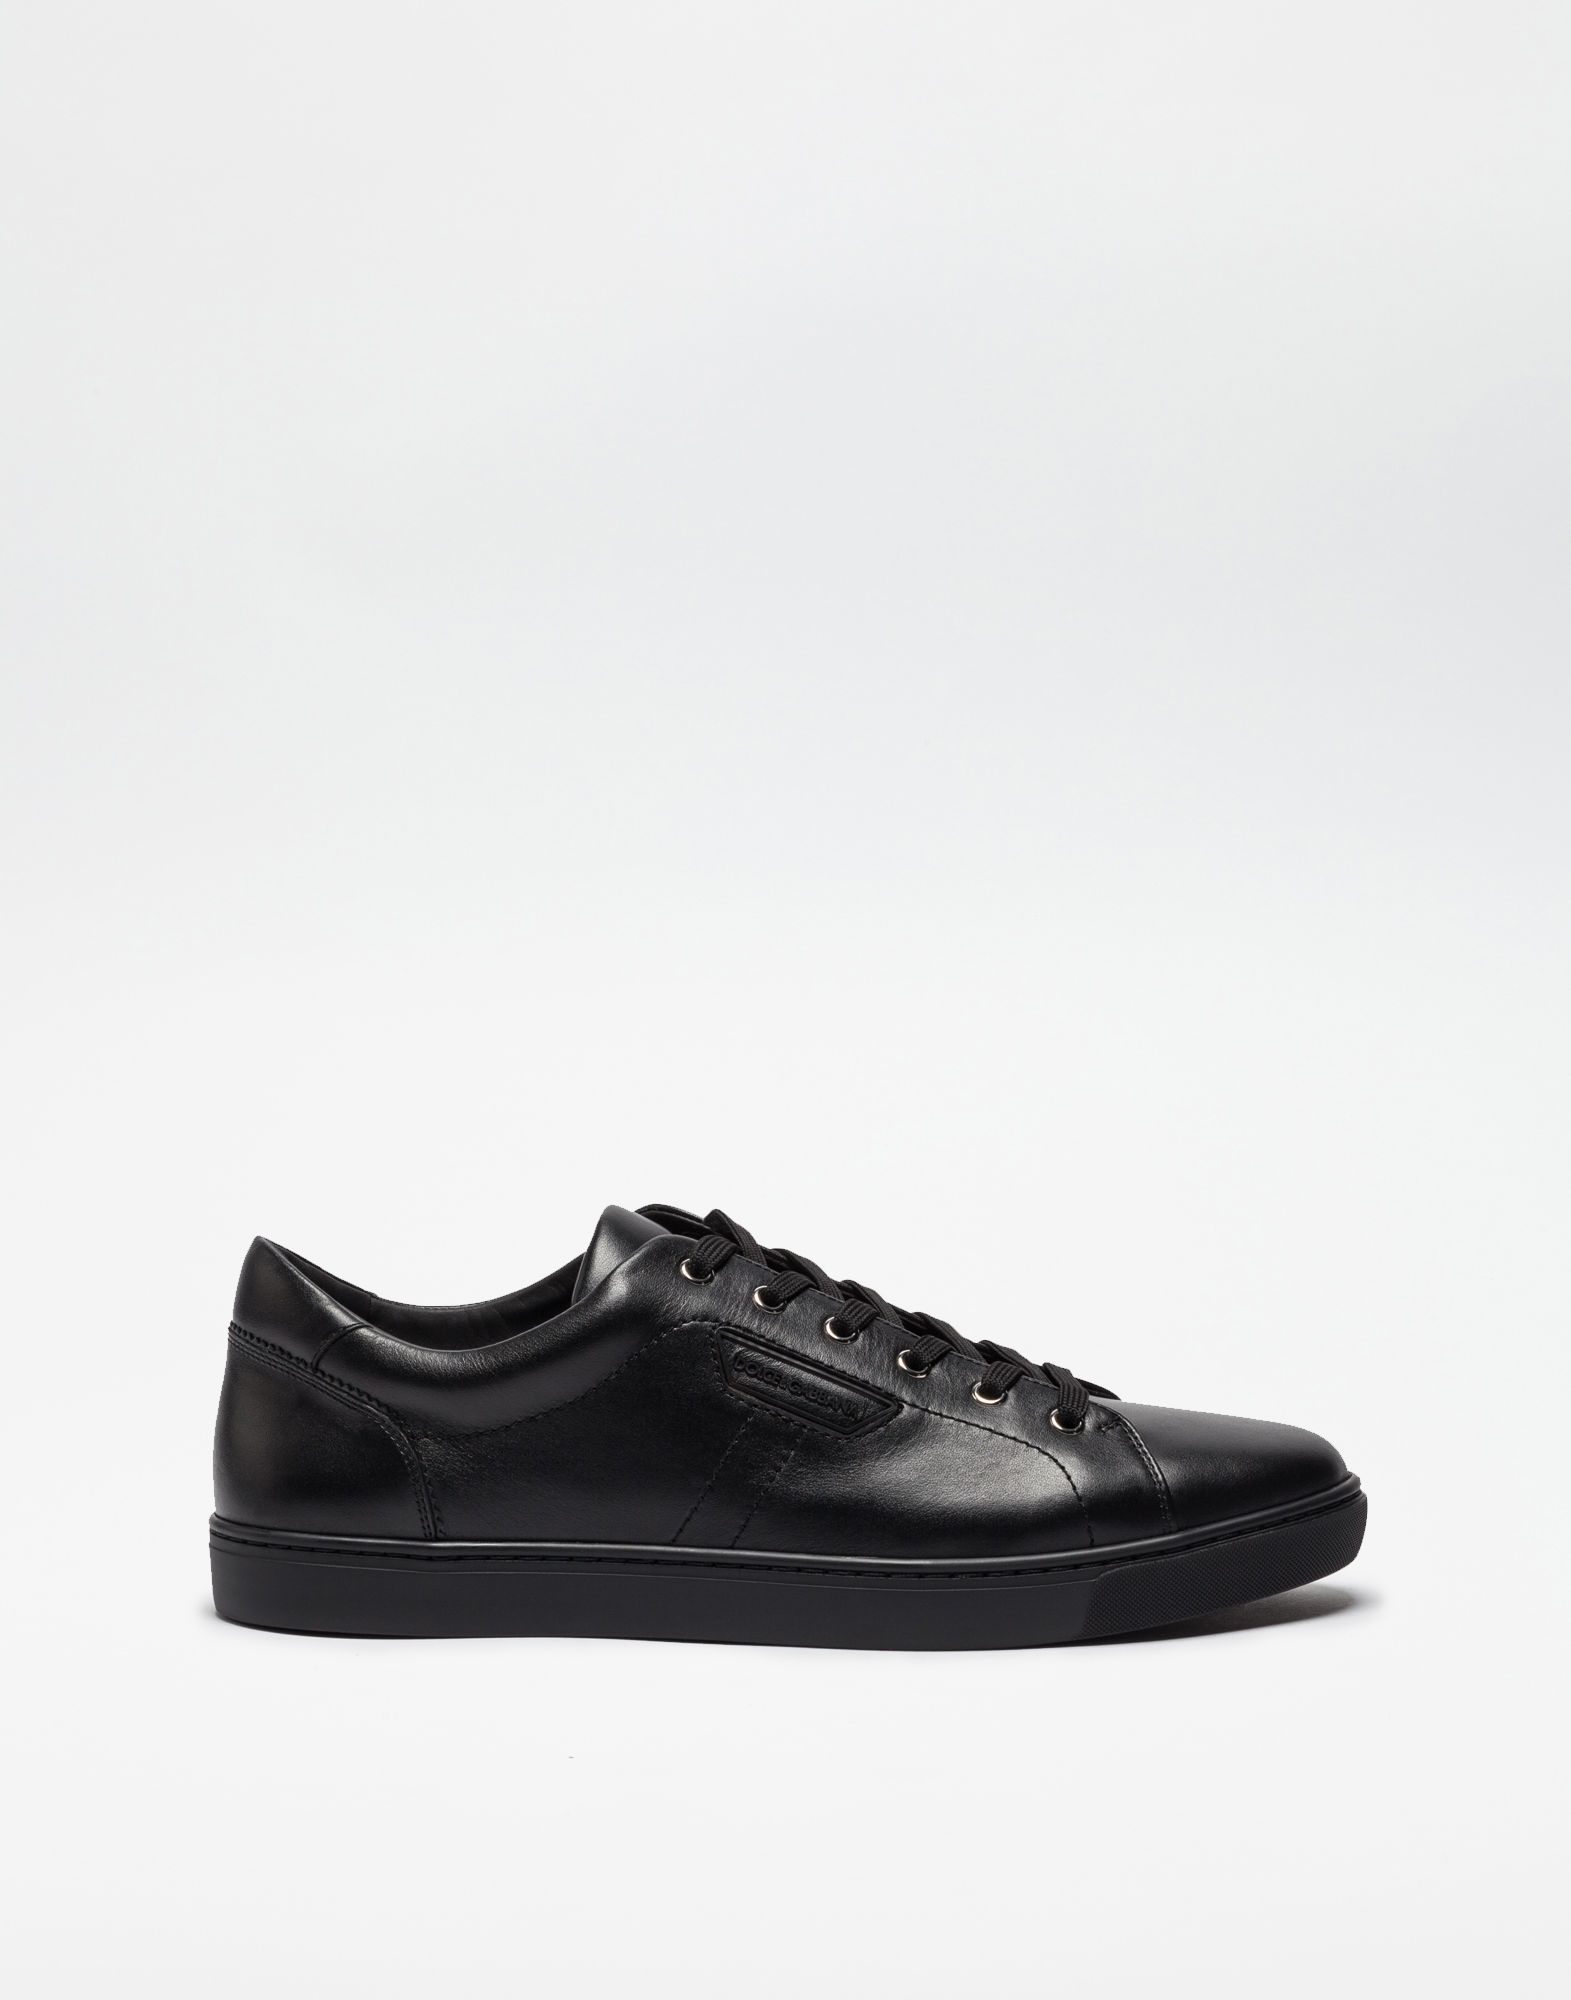 DOLCE & GABBANA London Leather Sneakers. #dolcegabbana #shoes #